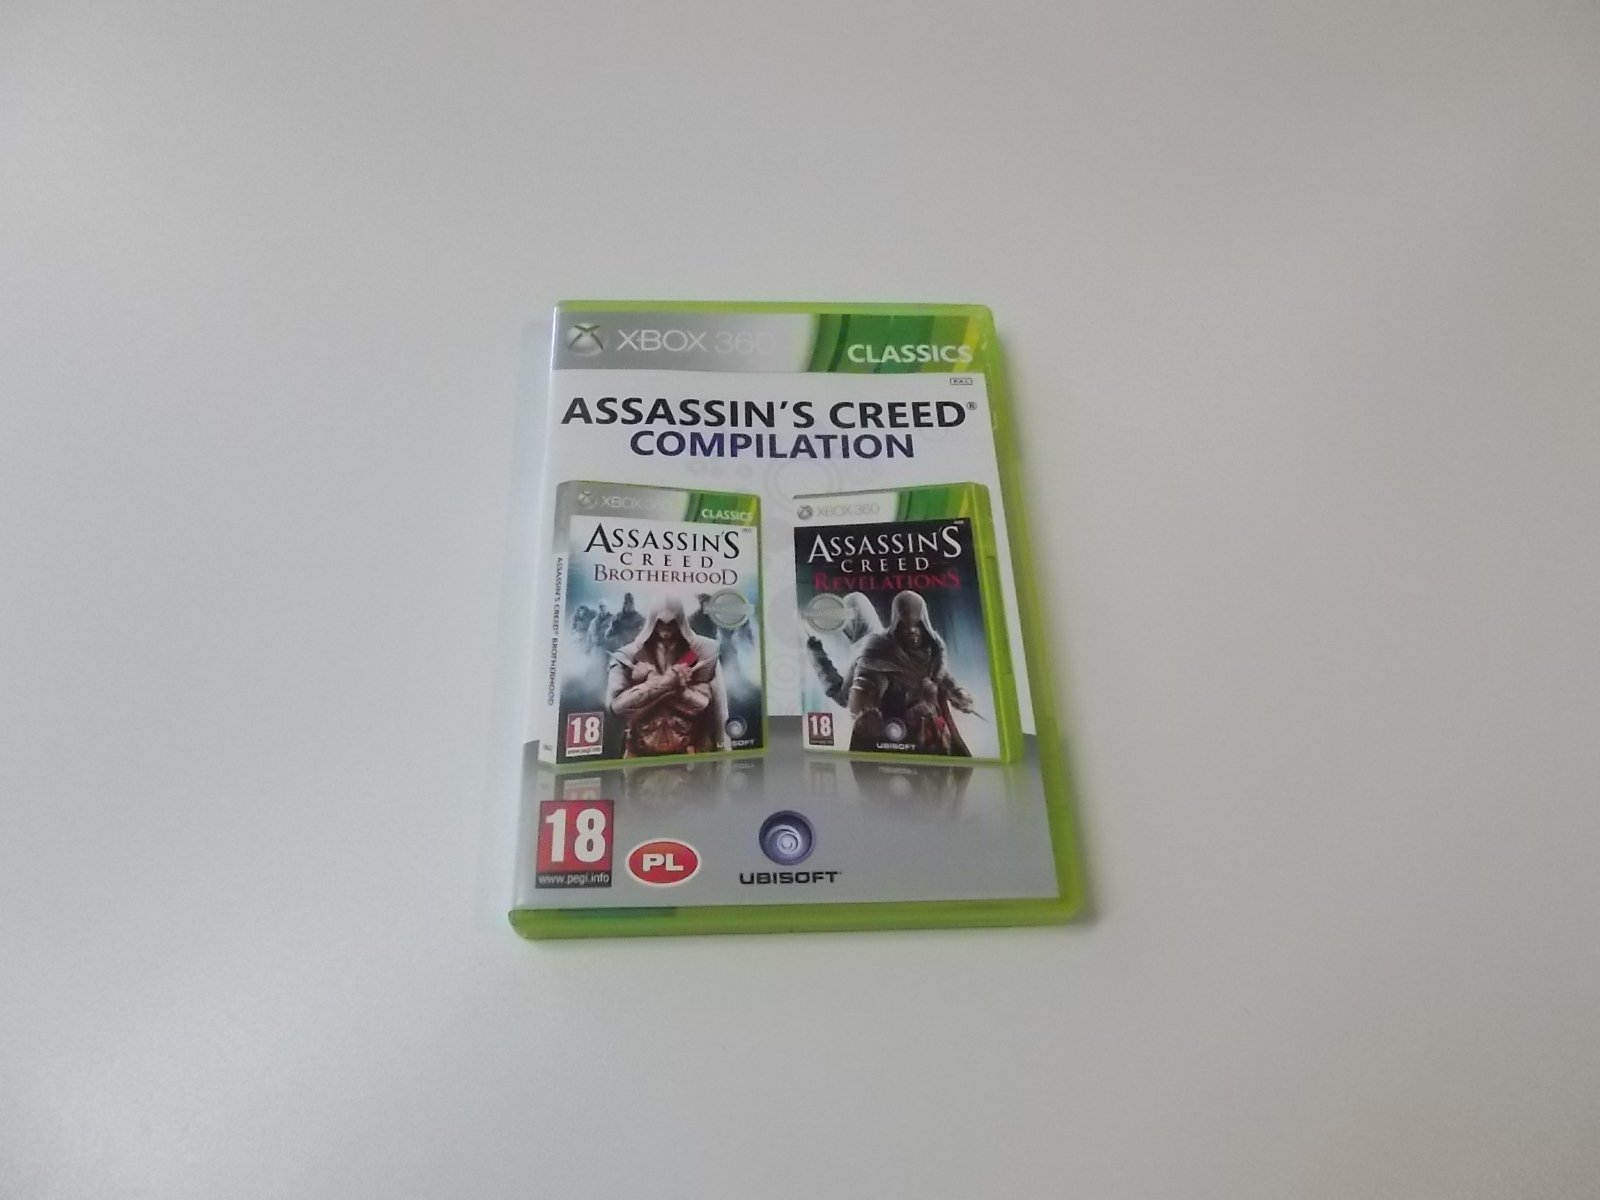 Assassins Creed Compilation - GRA Xbox 360 - Opole 0438